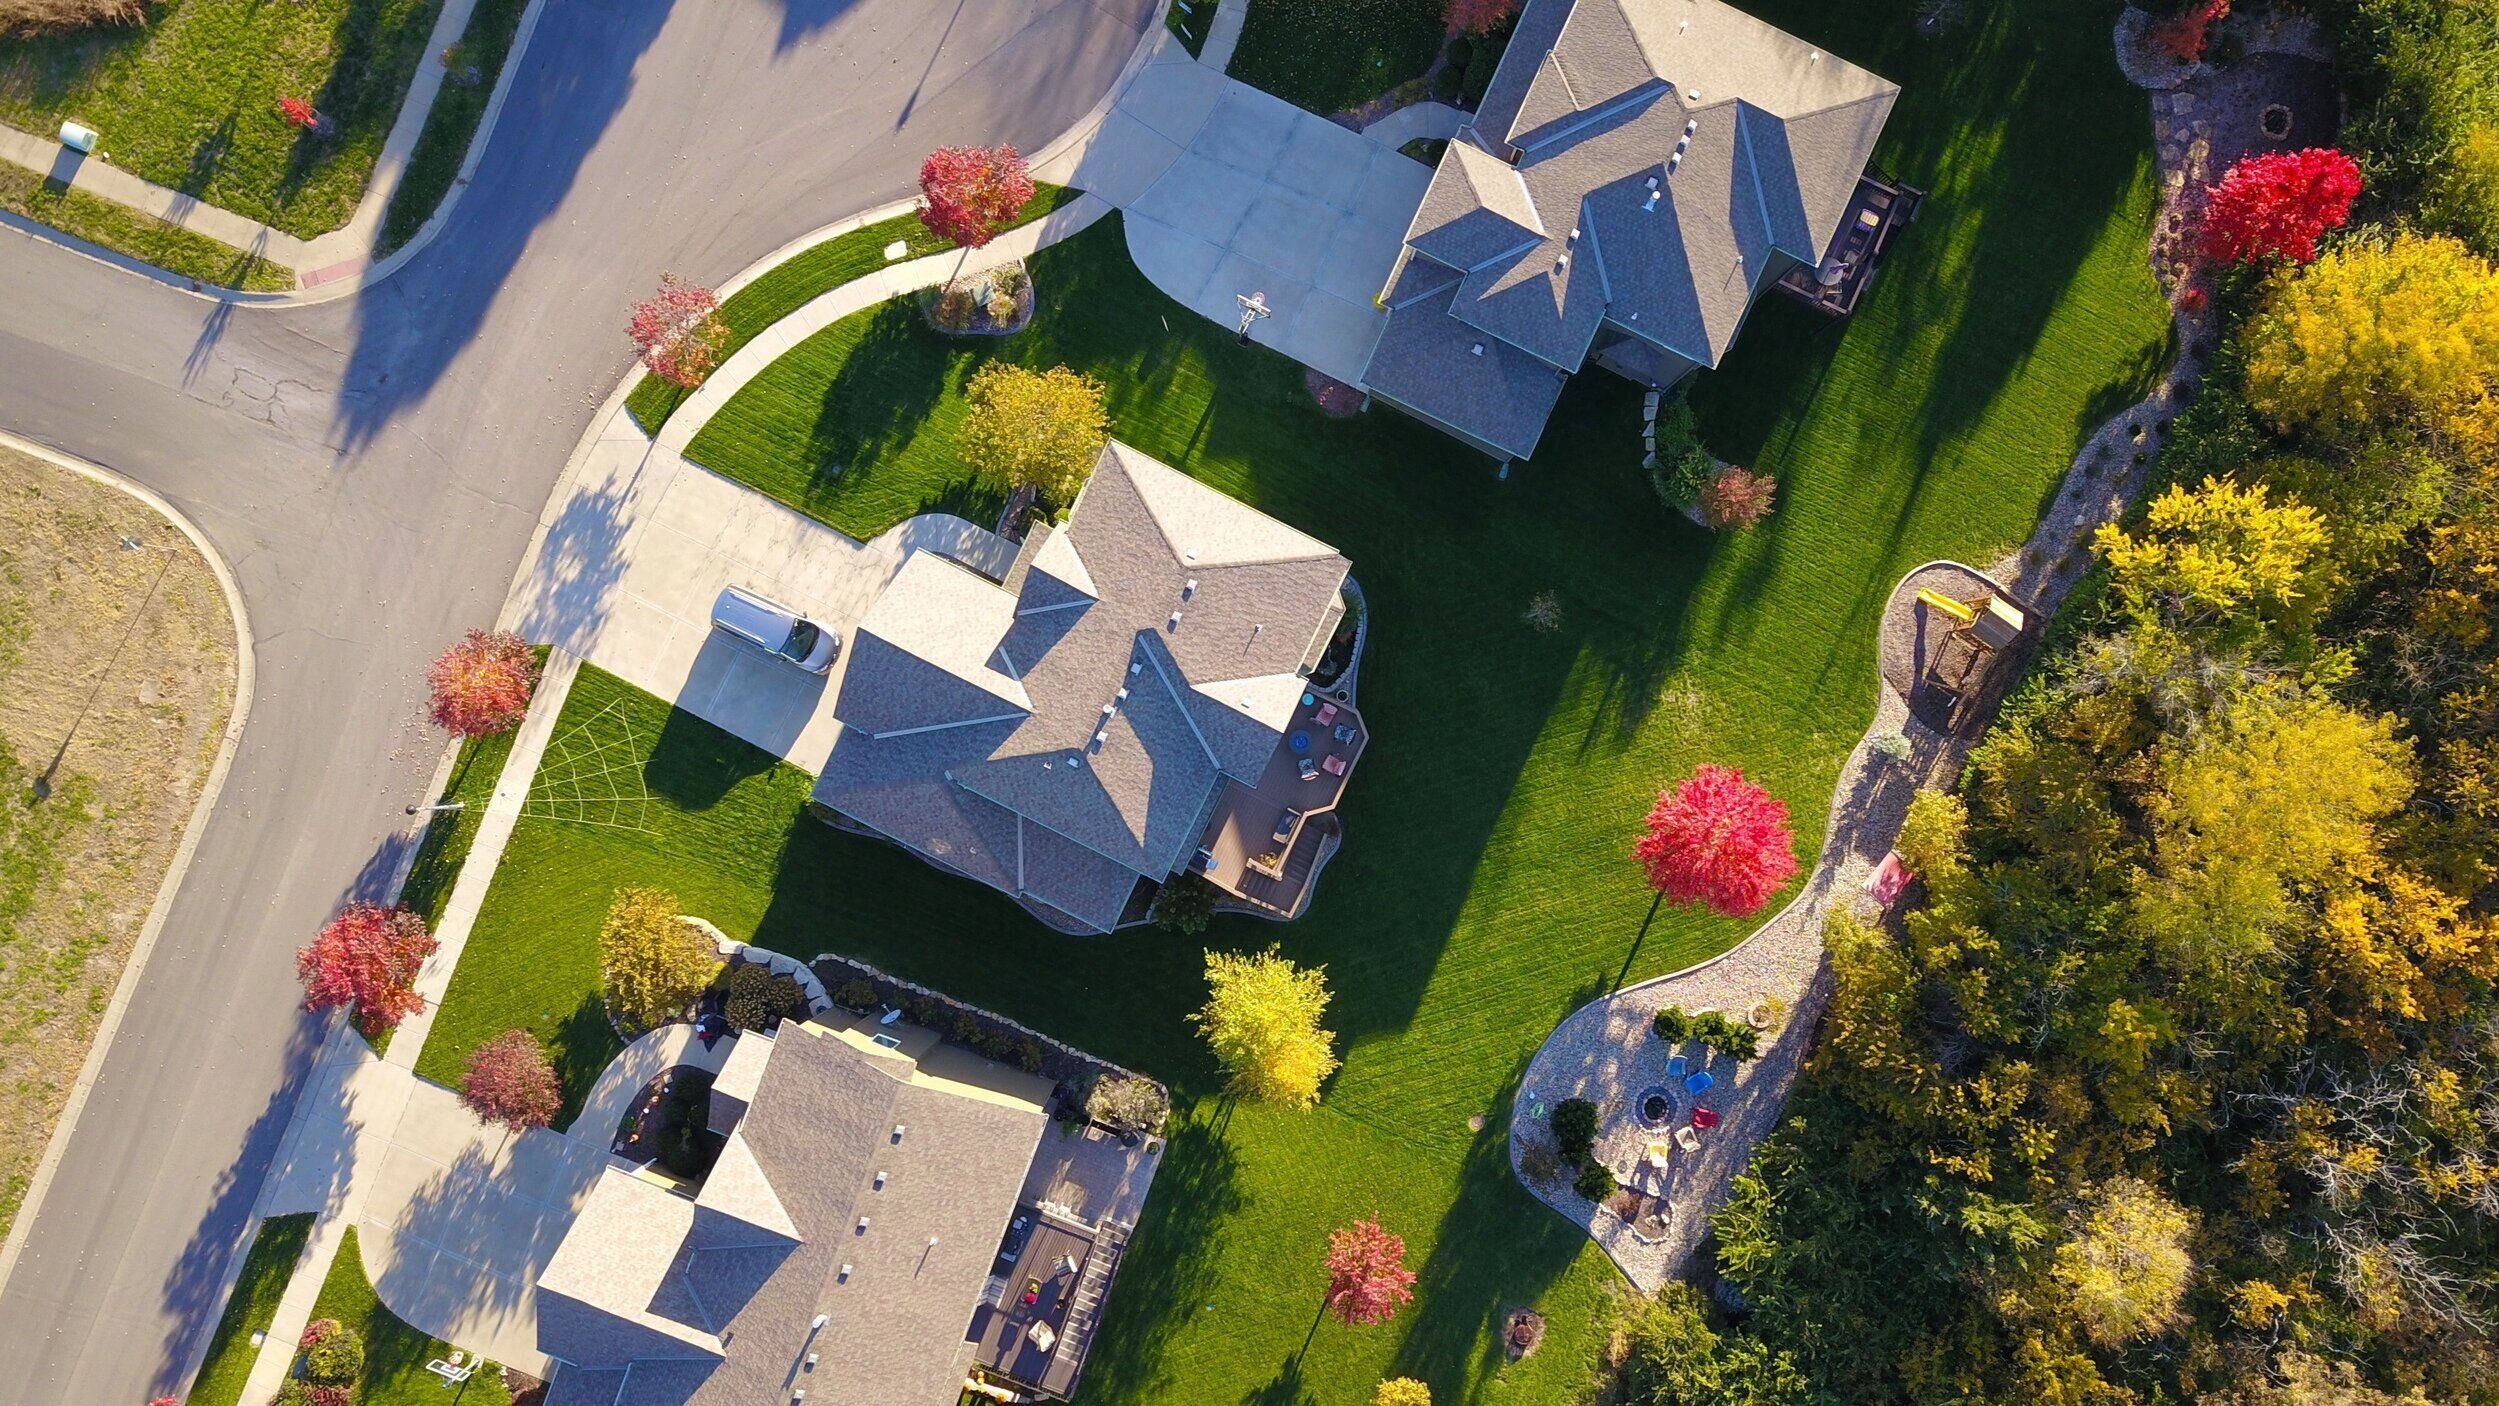 Property & casualty   Experts that make recommendations and also help you find errors in coverage, identify billing issues and risk and make informed decisions.